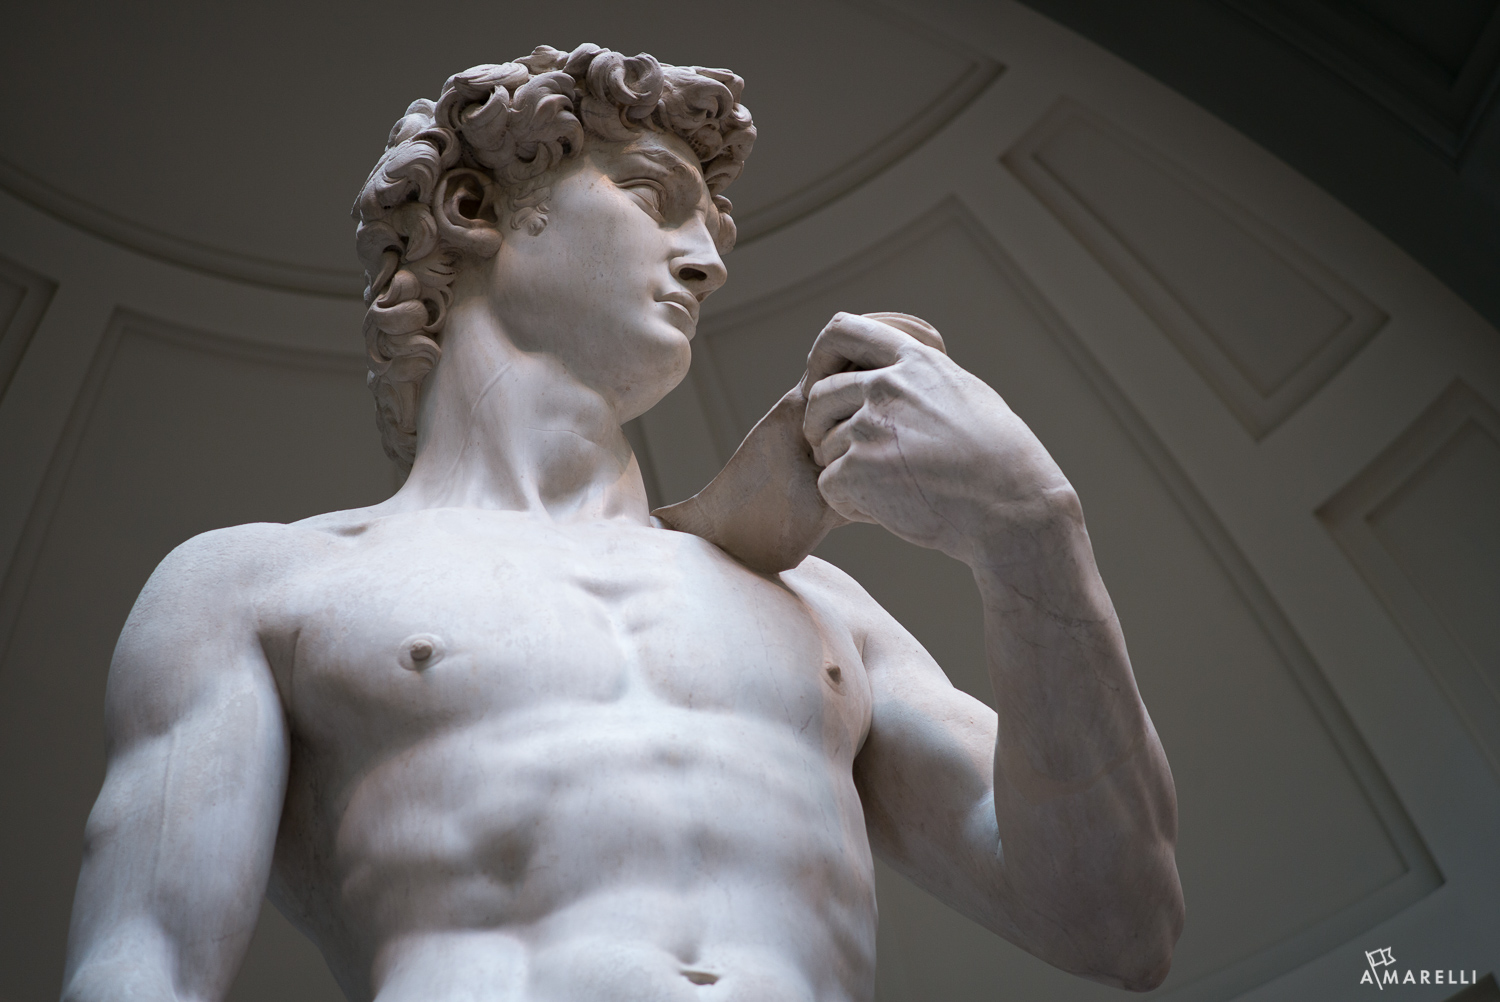 5-david-detail-michelangelo-adam-marelli